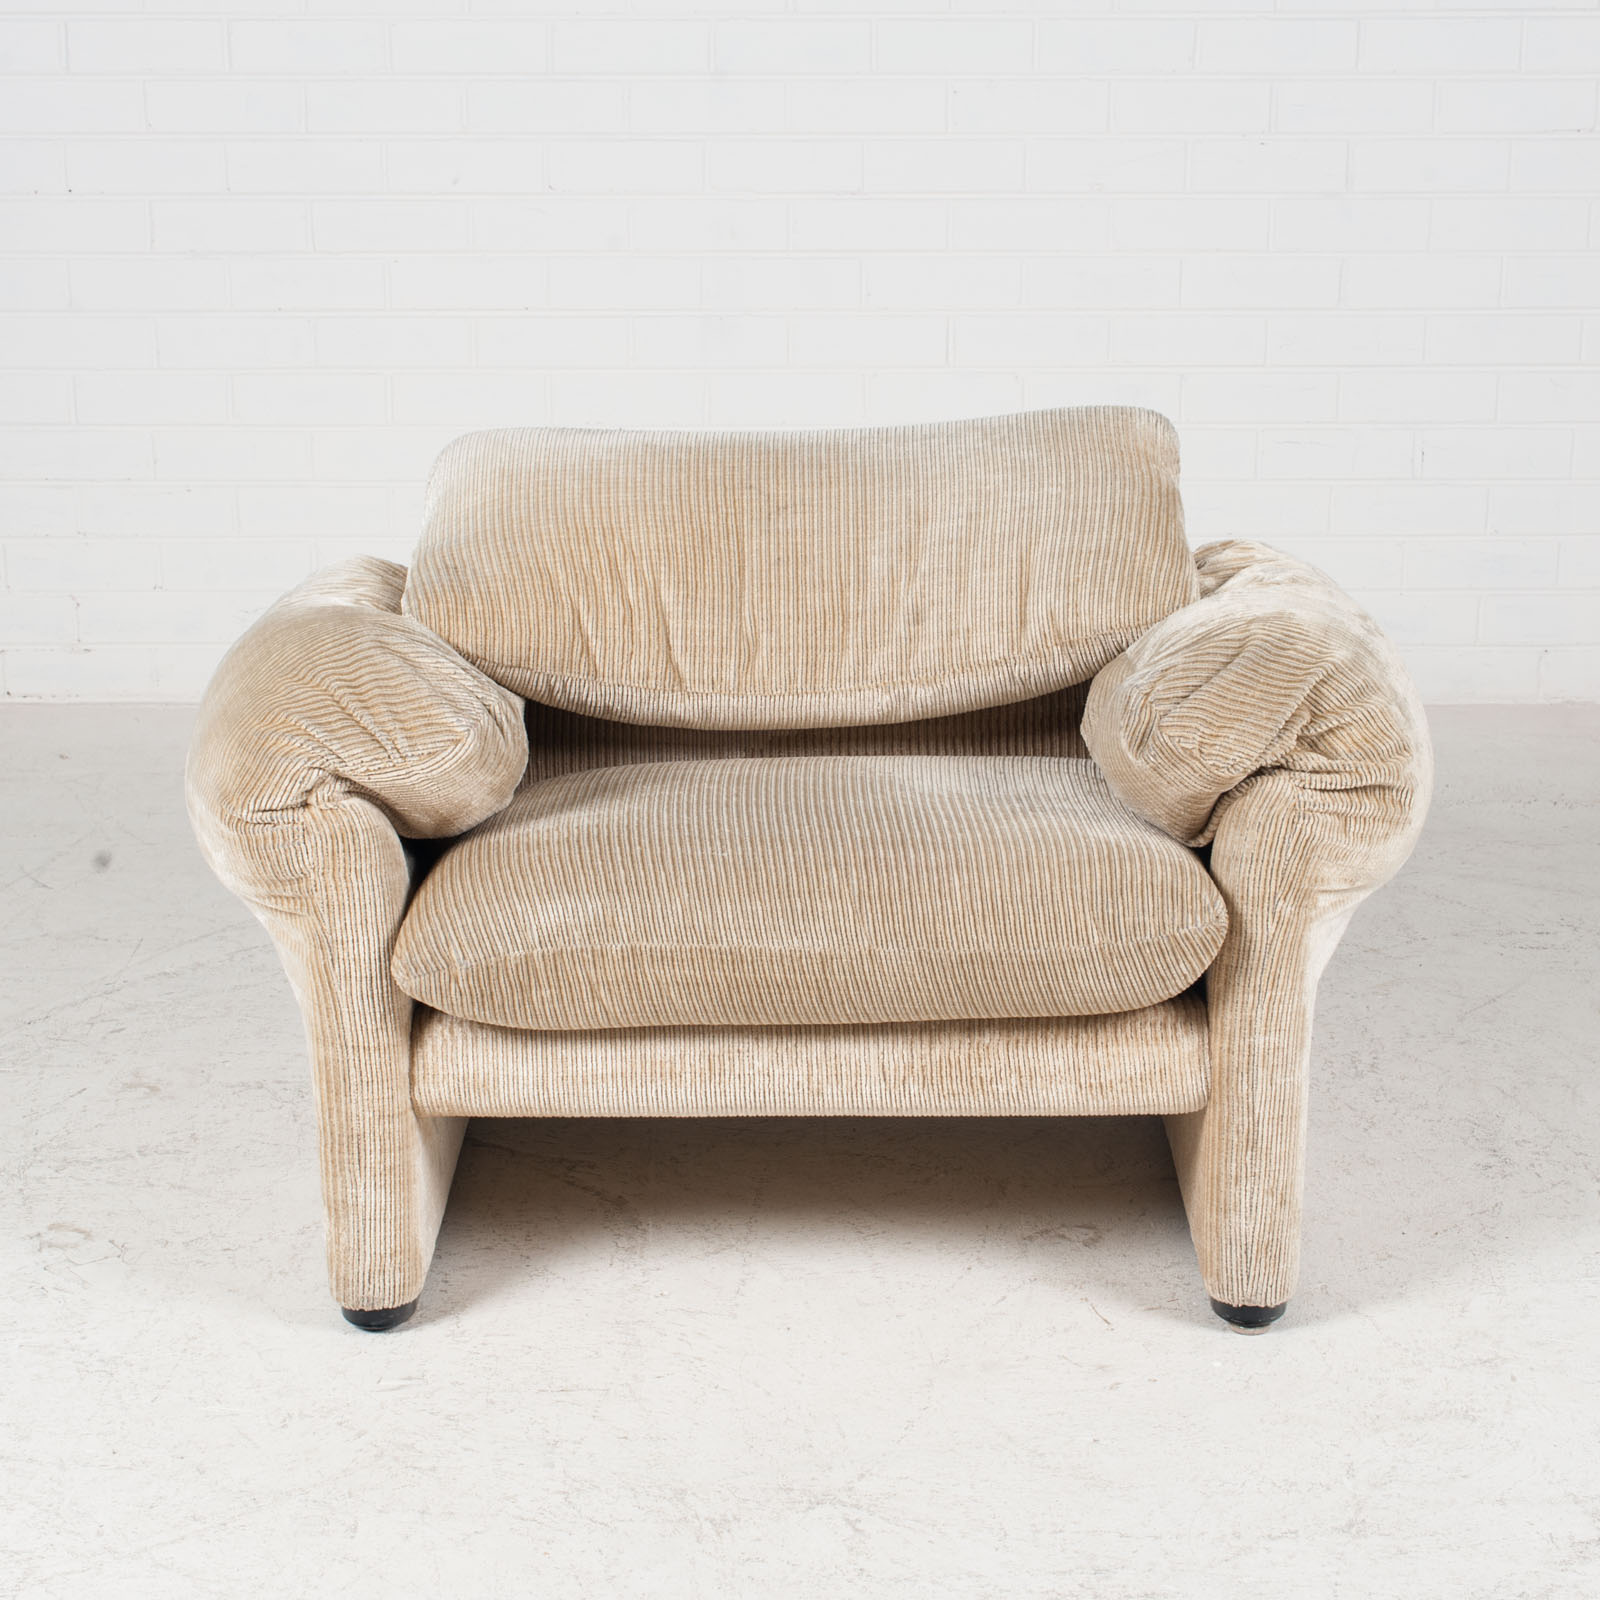 Maralunga Armchair By Vico Magistretti For Cassina In Original Upholstery 1970s Italy 02